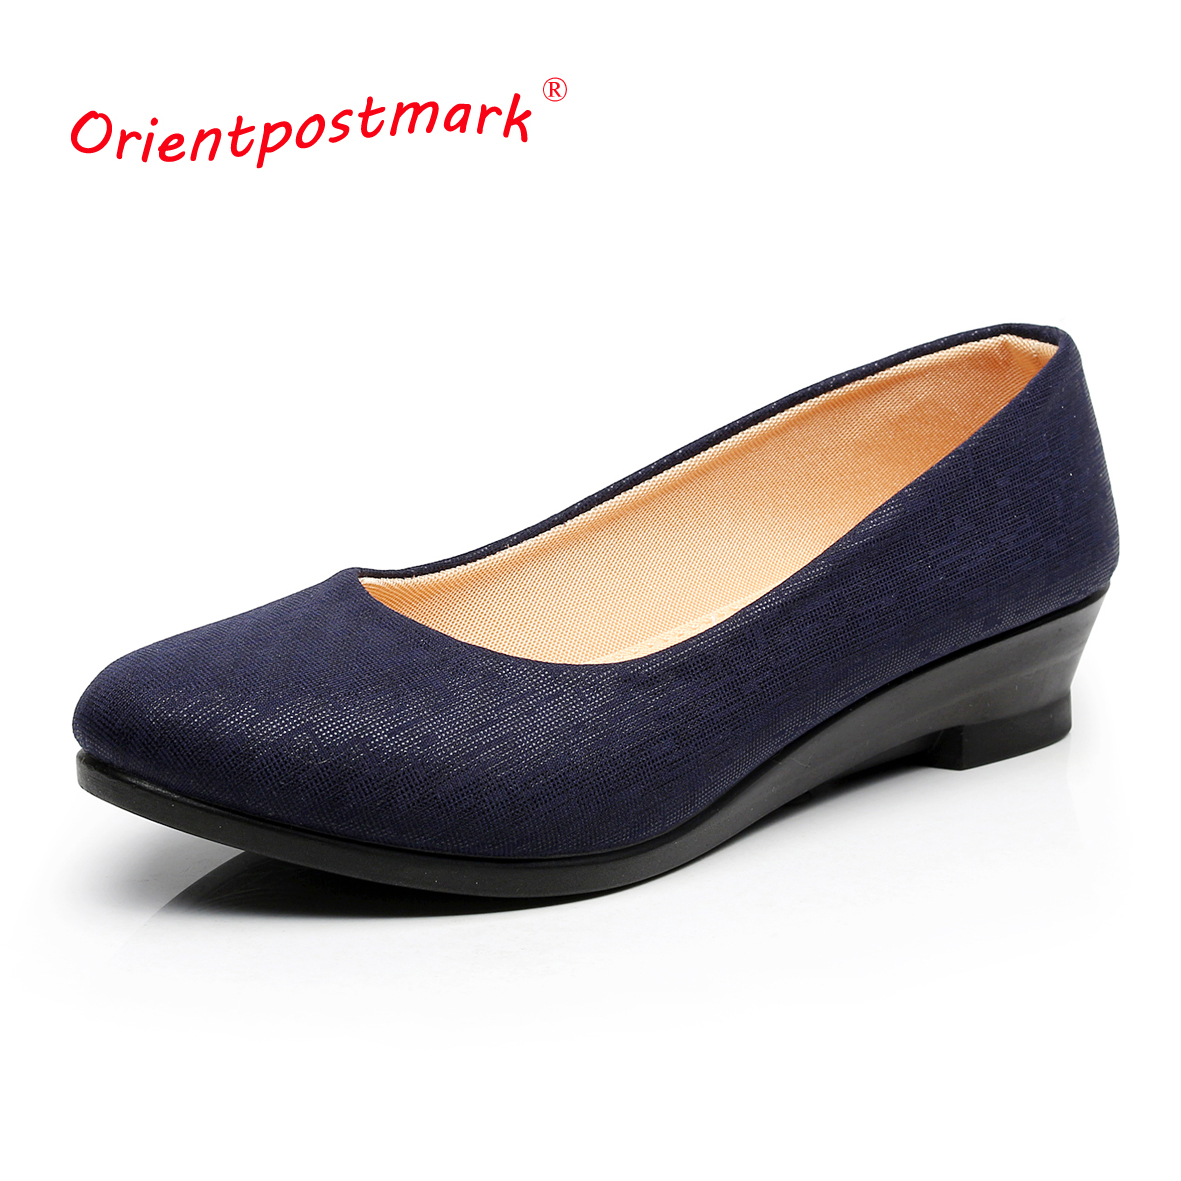 Women Ballet Shoes Women Wedges Shoes for Office Work Cloth Sweet Loafers Women's Pregnant Wedges  Shoes Oversize Boat Shoes women shoes women ballet flats shoes for work flats sweet loafers slip on women s pregnant flat shoes oversize boat shoes d35m25